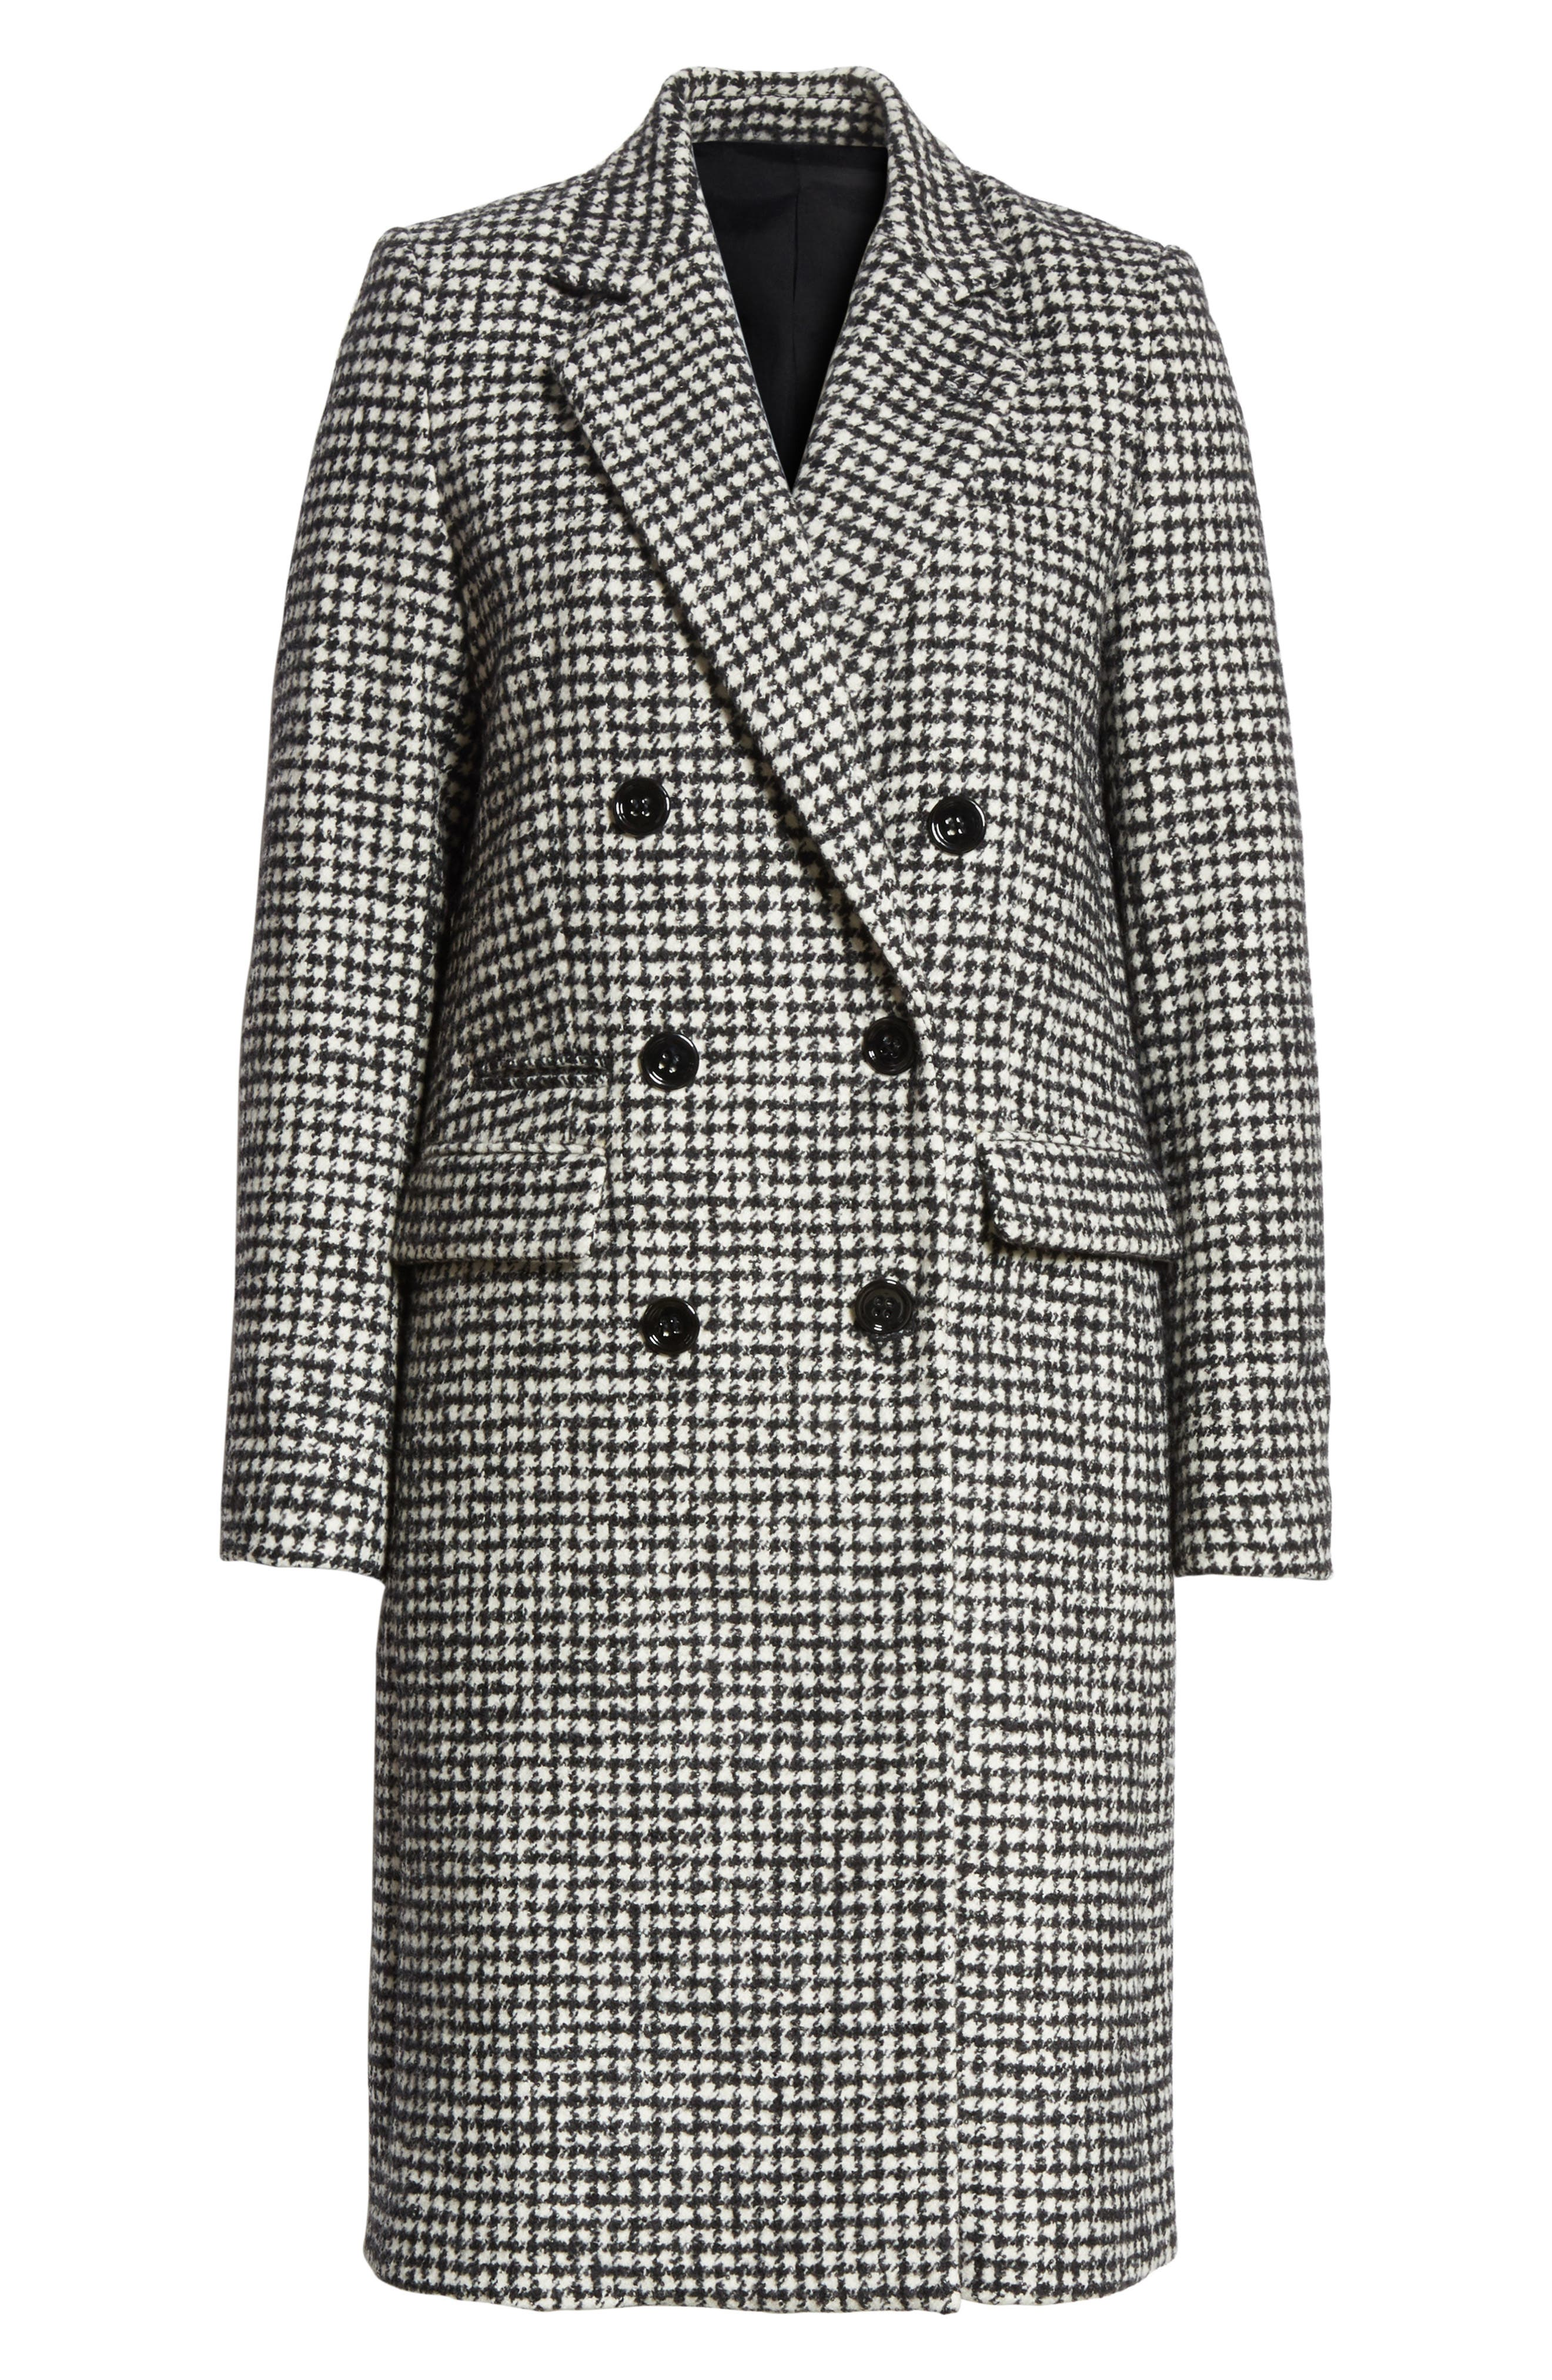 Double-Breasted Wool Blend Coat,                             Alternate thumbnail 5, color,                             001